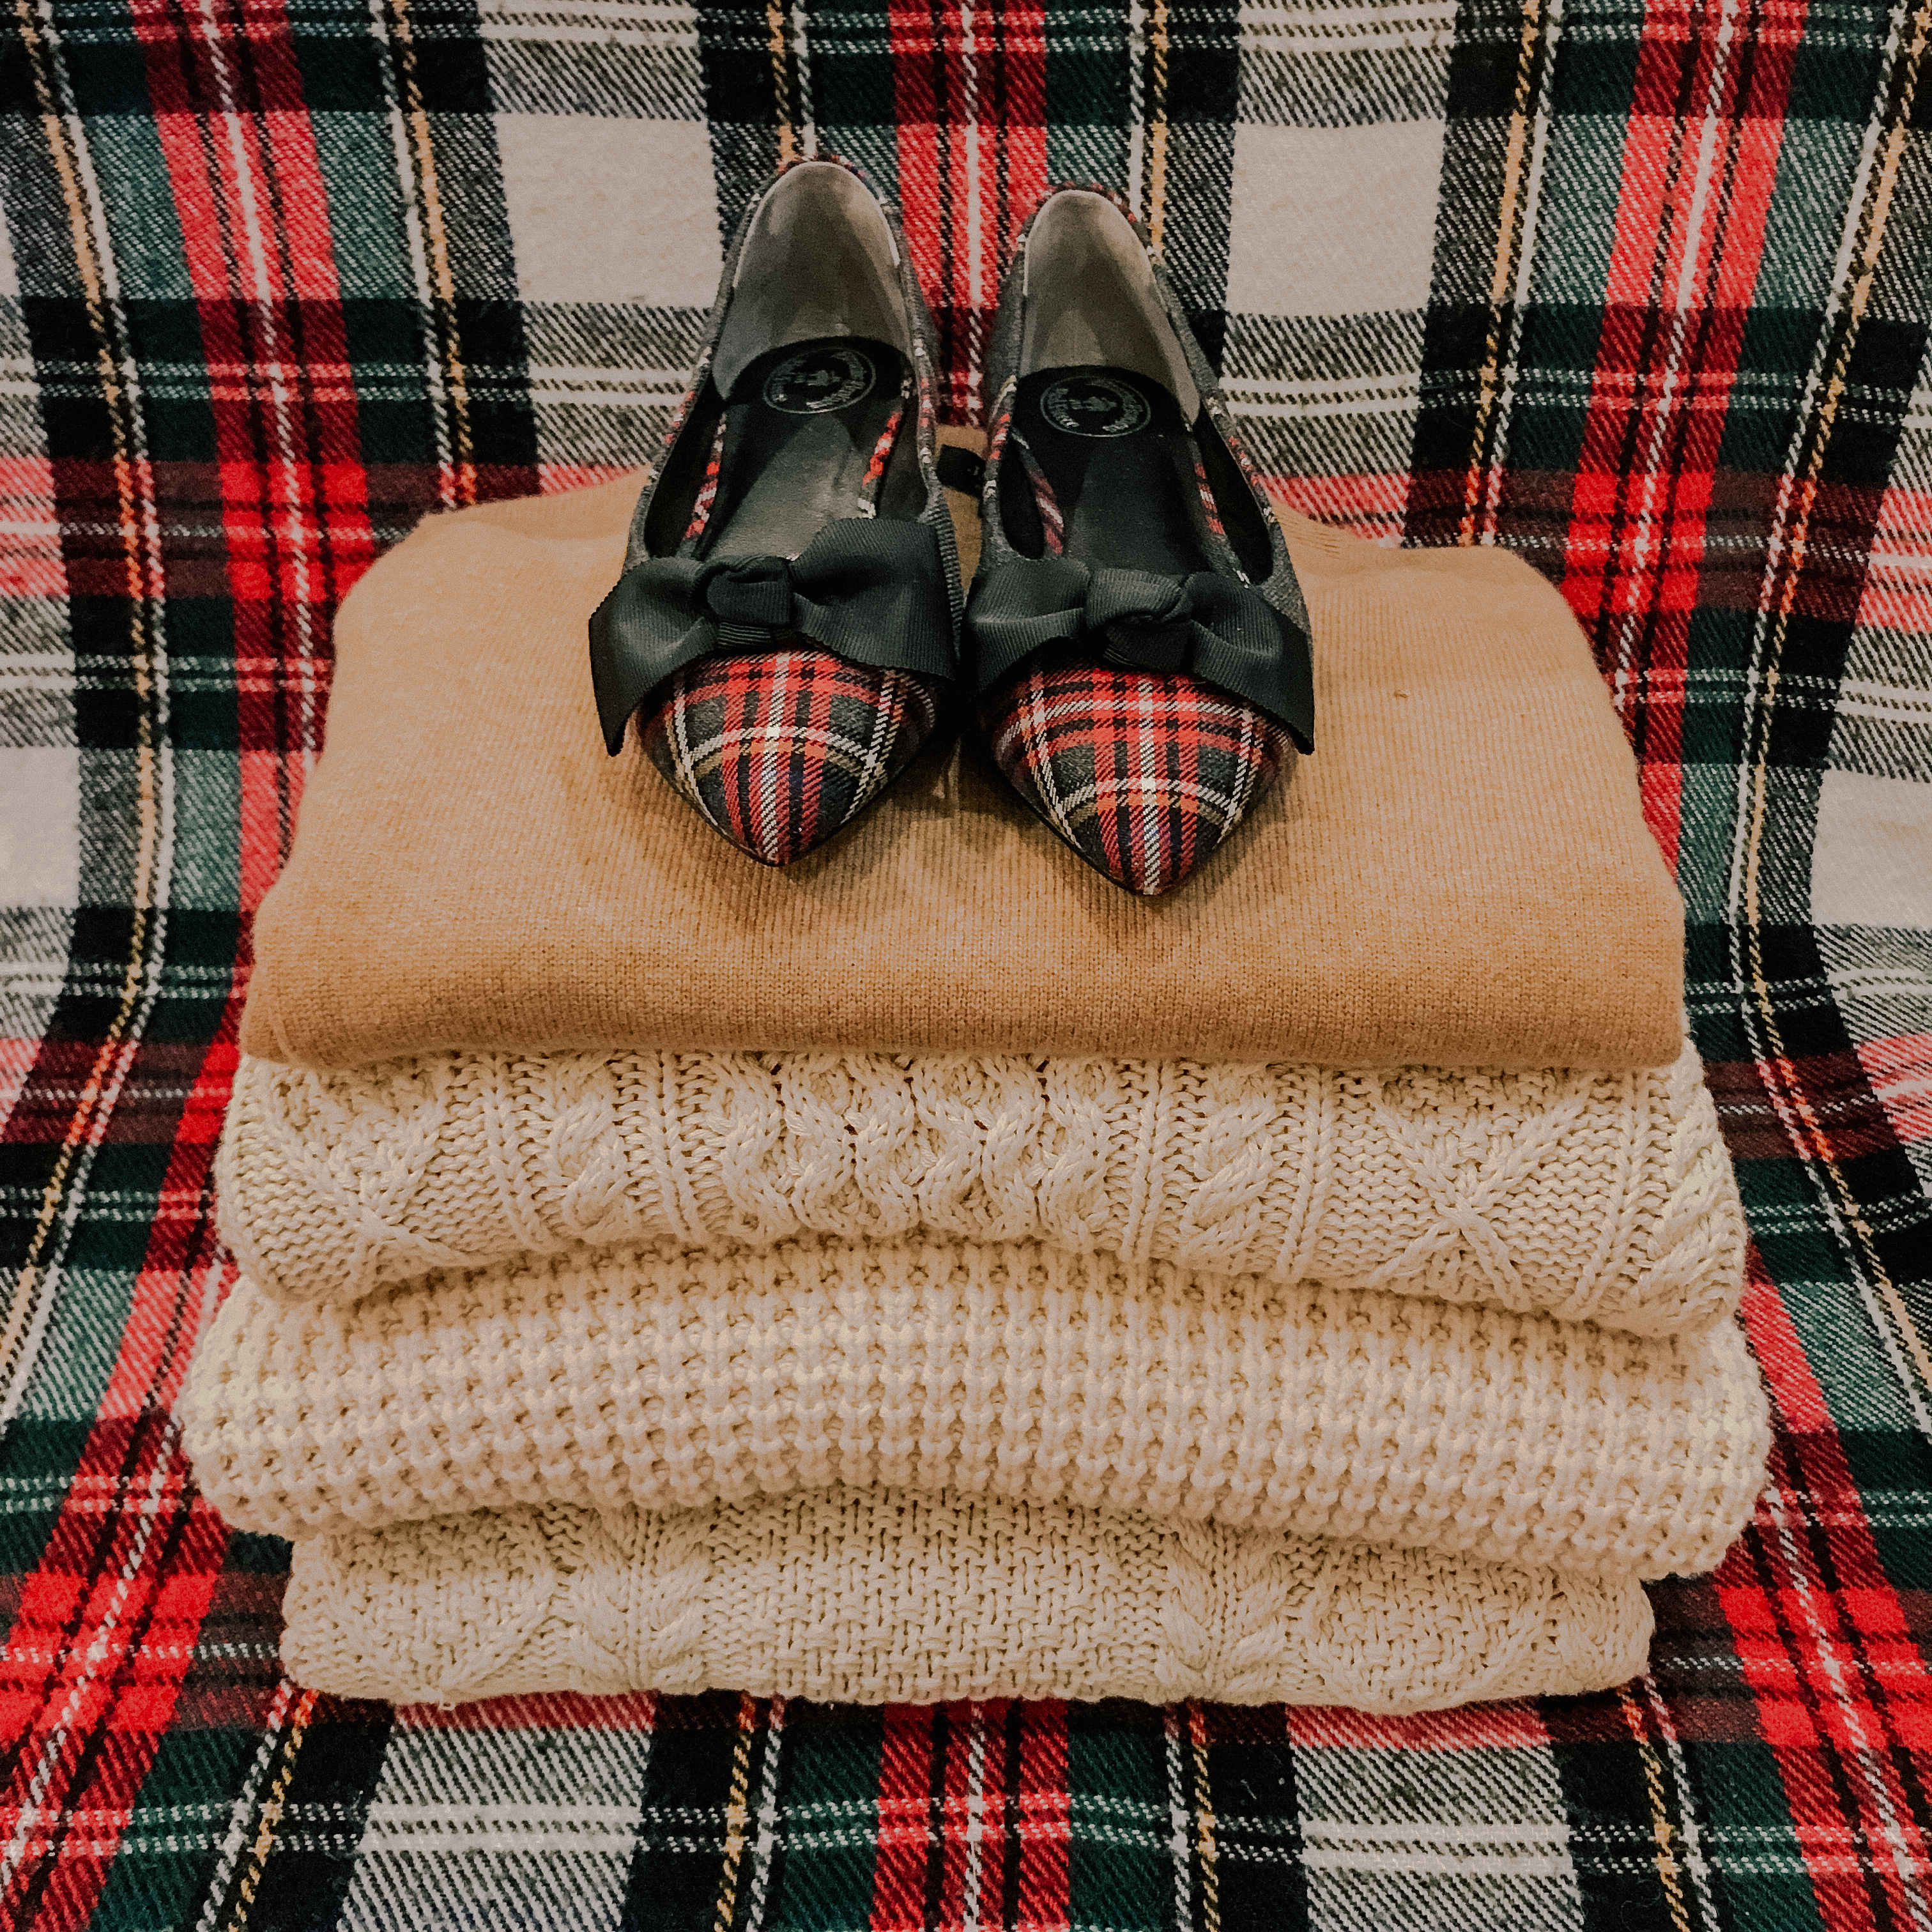 recent finds: plaid pointed toe flats with bows and cozy sweaters